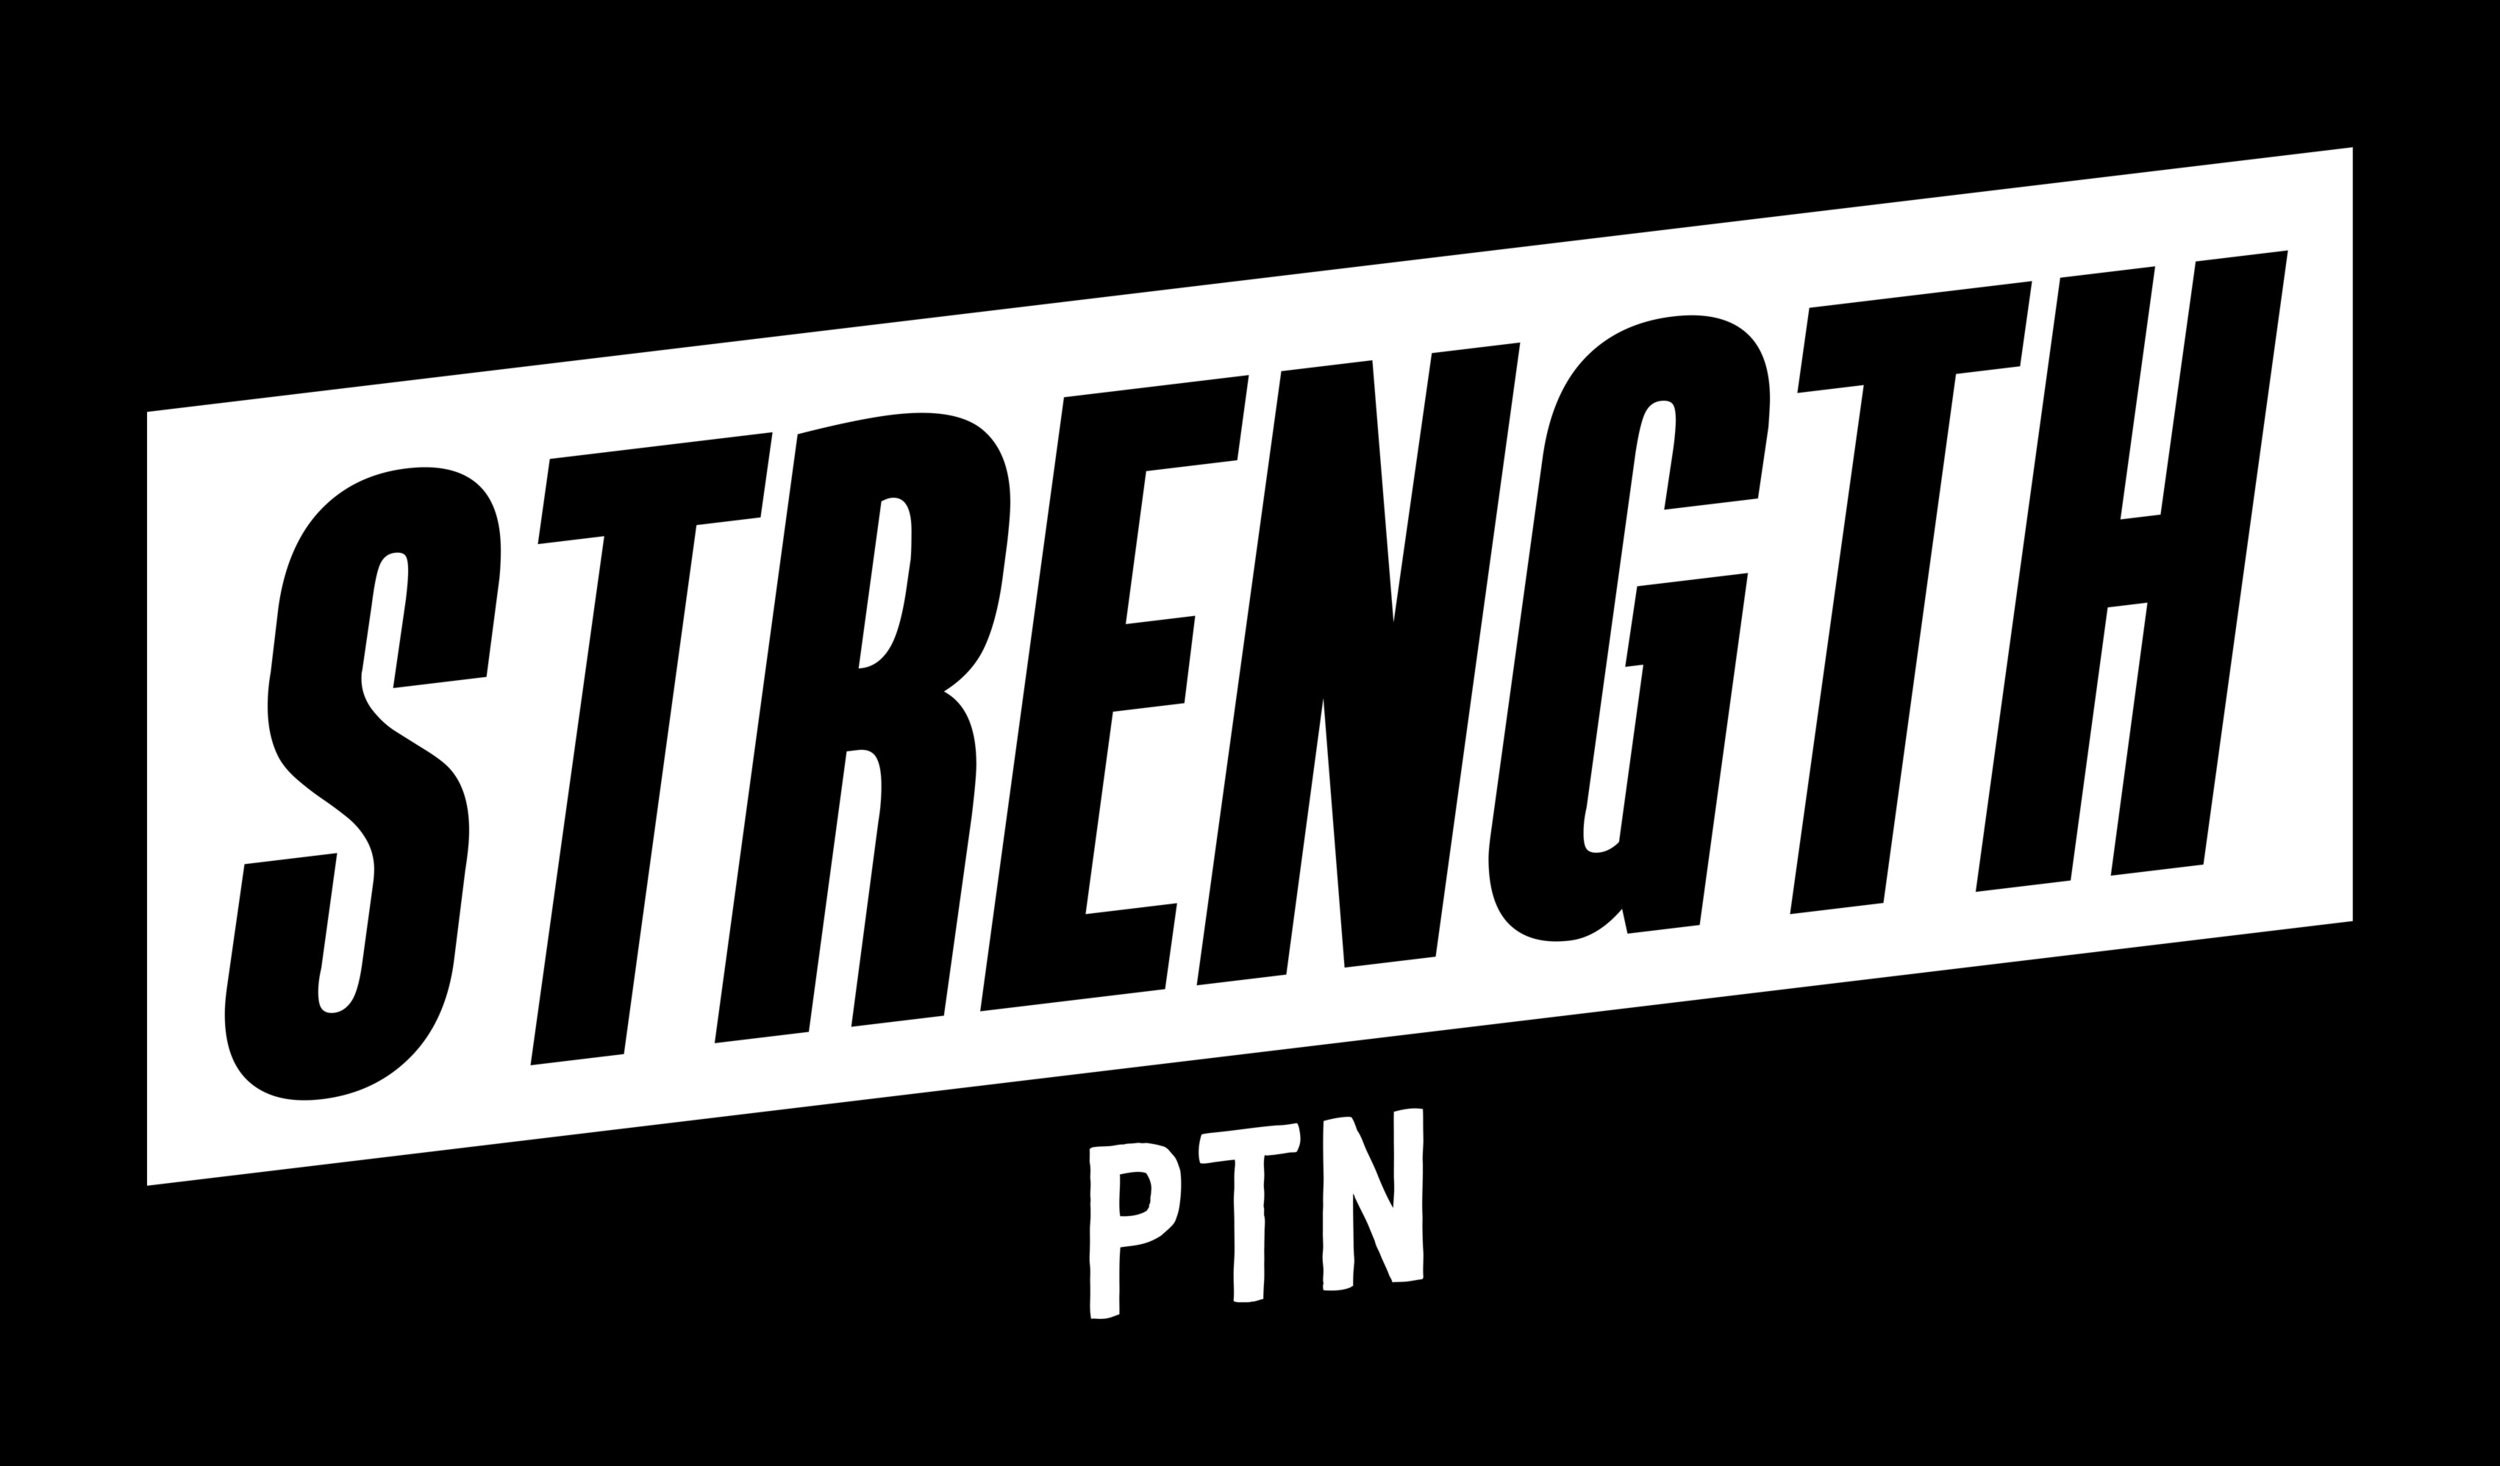 Join Our Team - Looking for a career in sports performance? strength by ptn is the facility for you. join our elite team in optimizing athletes in the greater pittsburgh area.Email us